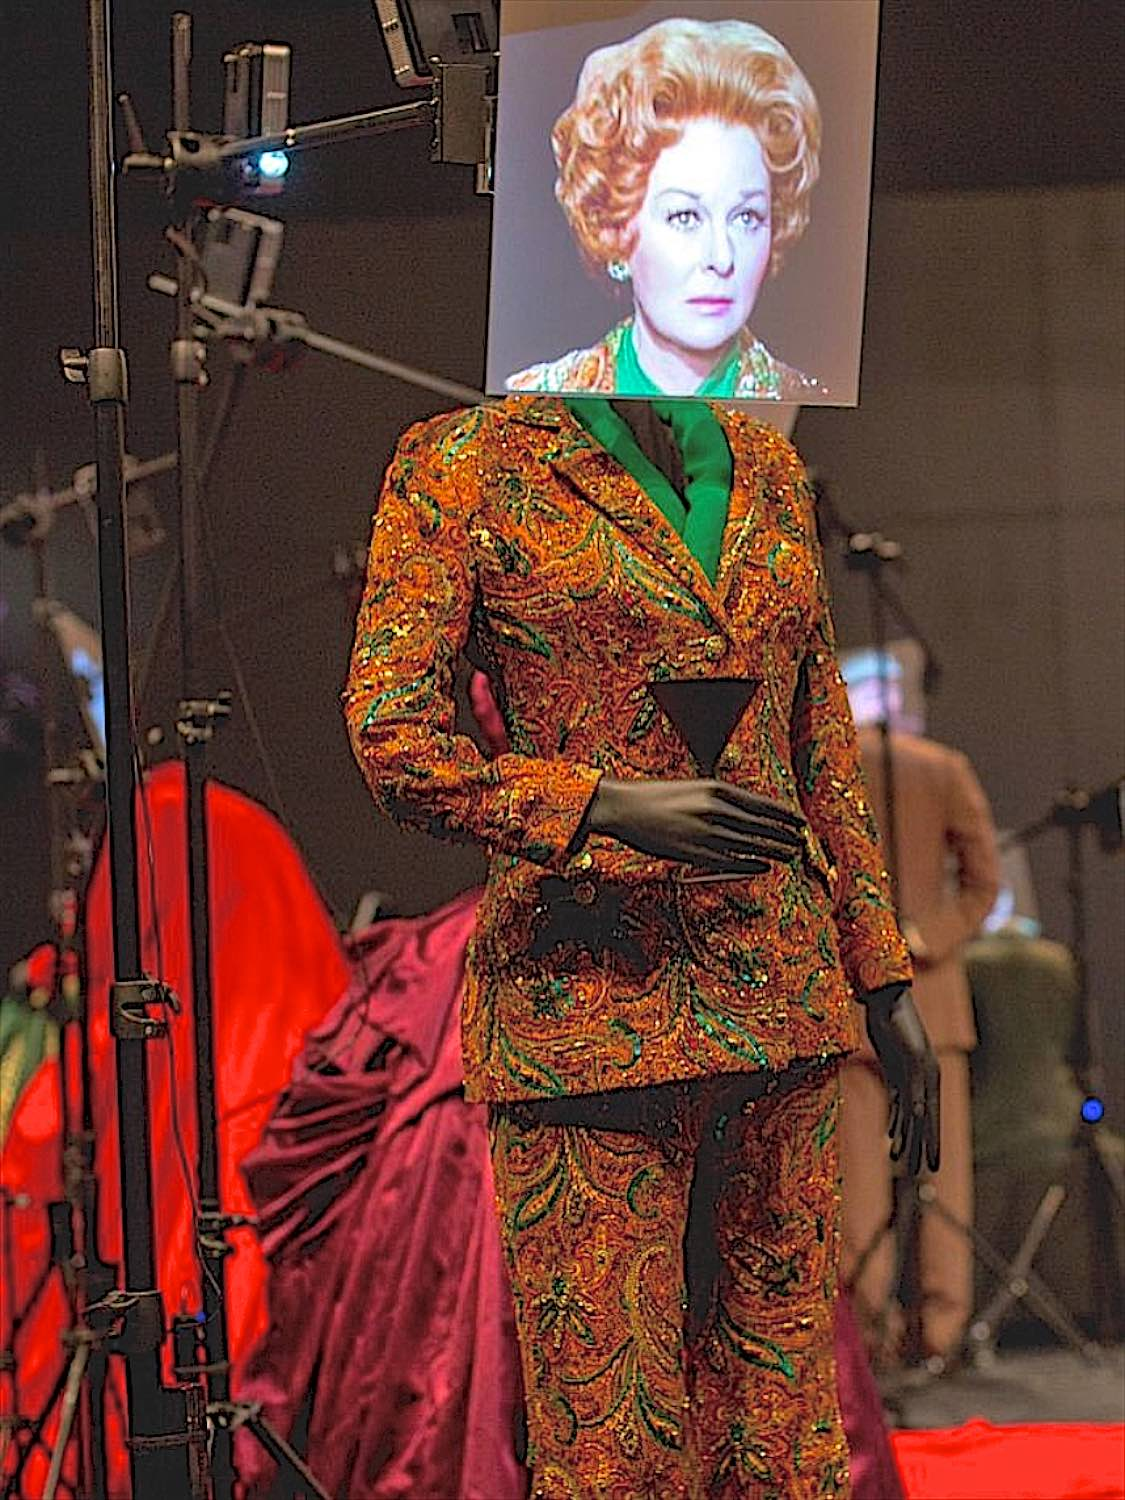 Costume on display at the Academy Museum of Motion Pictures